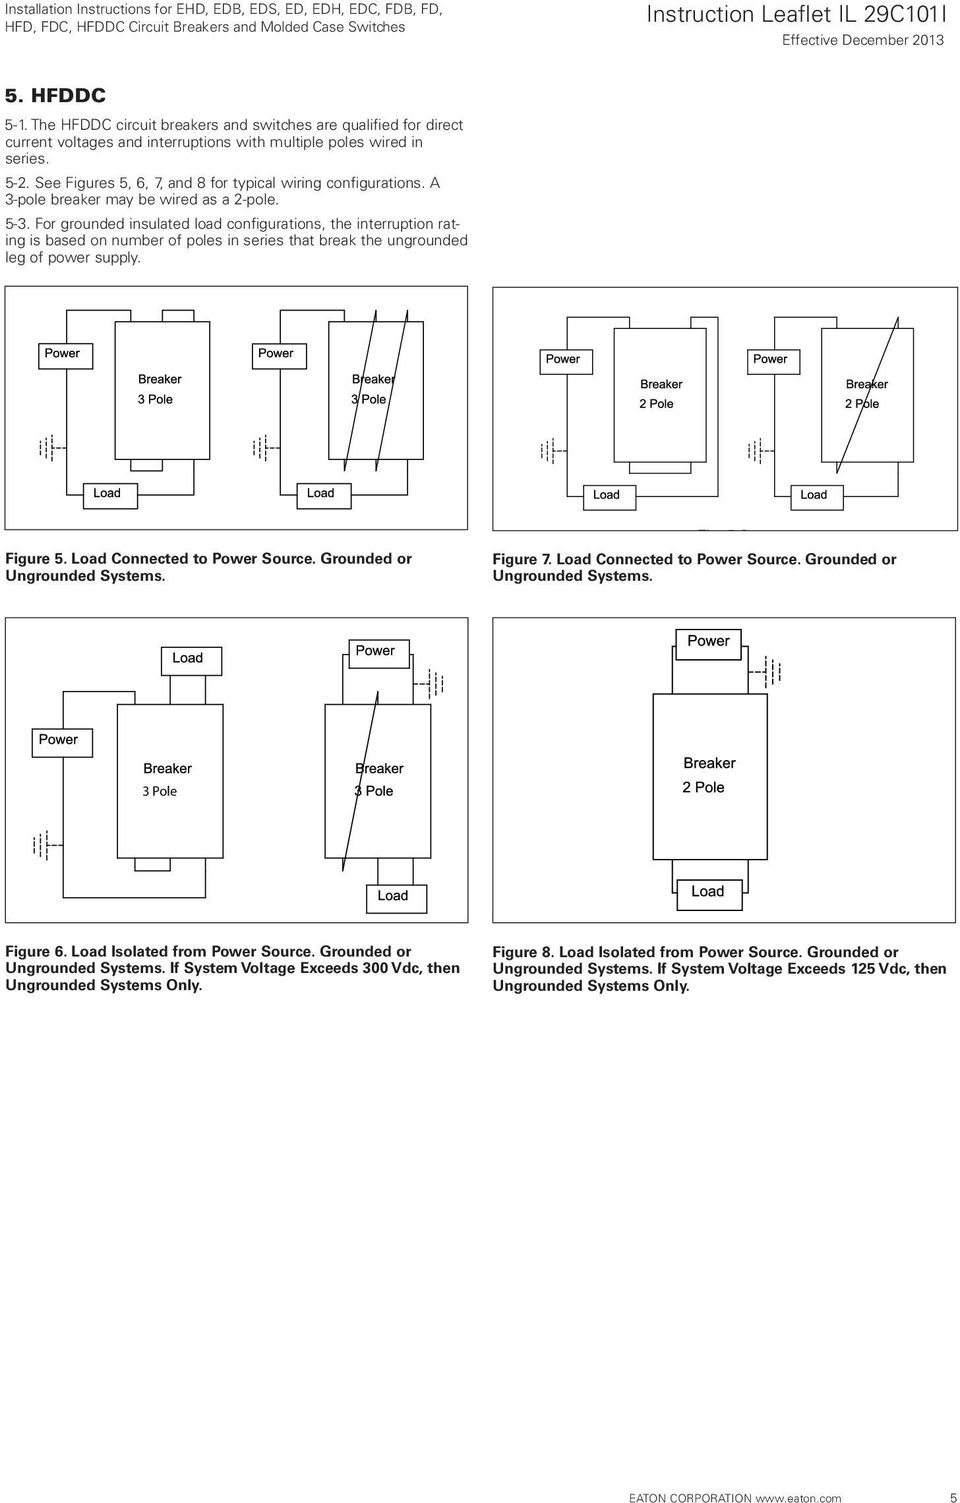 Installation Instructions For Ehd Edb Eds Ed Edh Edc Fdb Fd Typical Circuit Breaker Nameplate Iec 60947 Is The Grounded Insulated Load Configurations Interruption Rating Based On Number Of Poles In